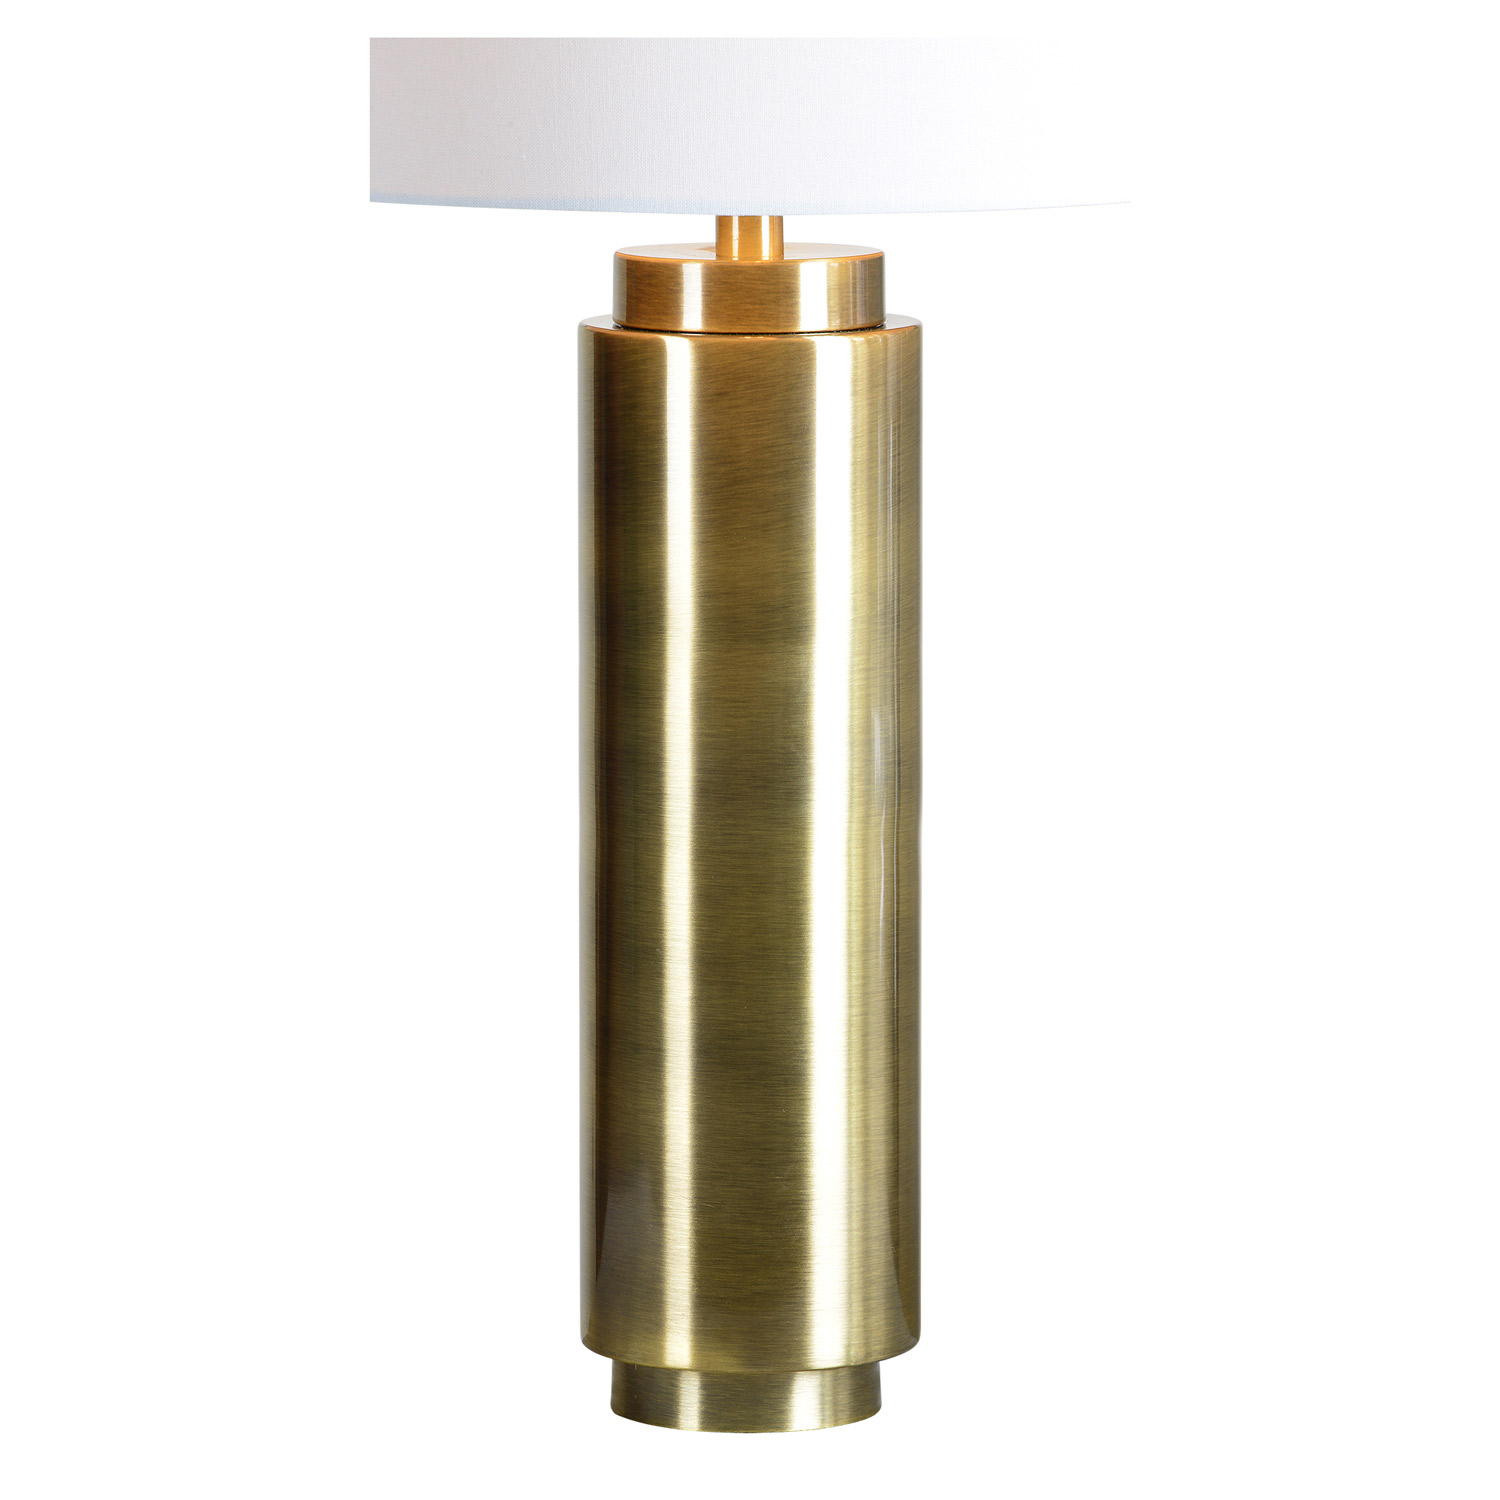 Ren-Wil Amelia Table Lamp - Bright Nickel